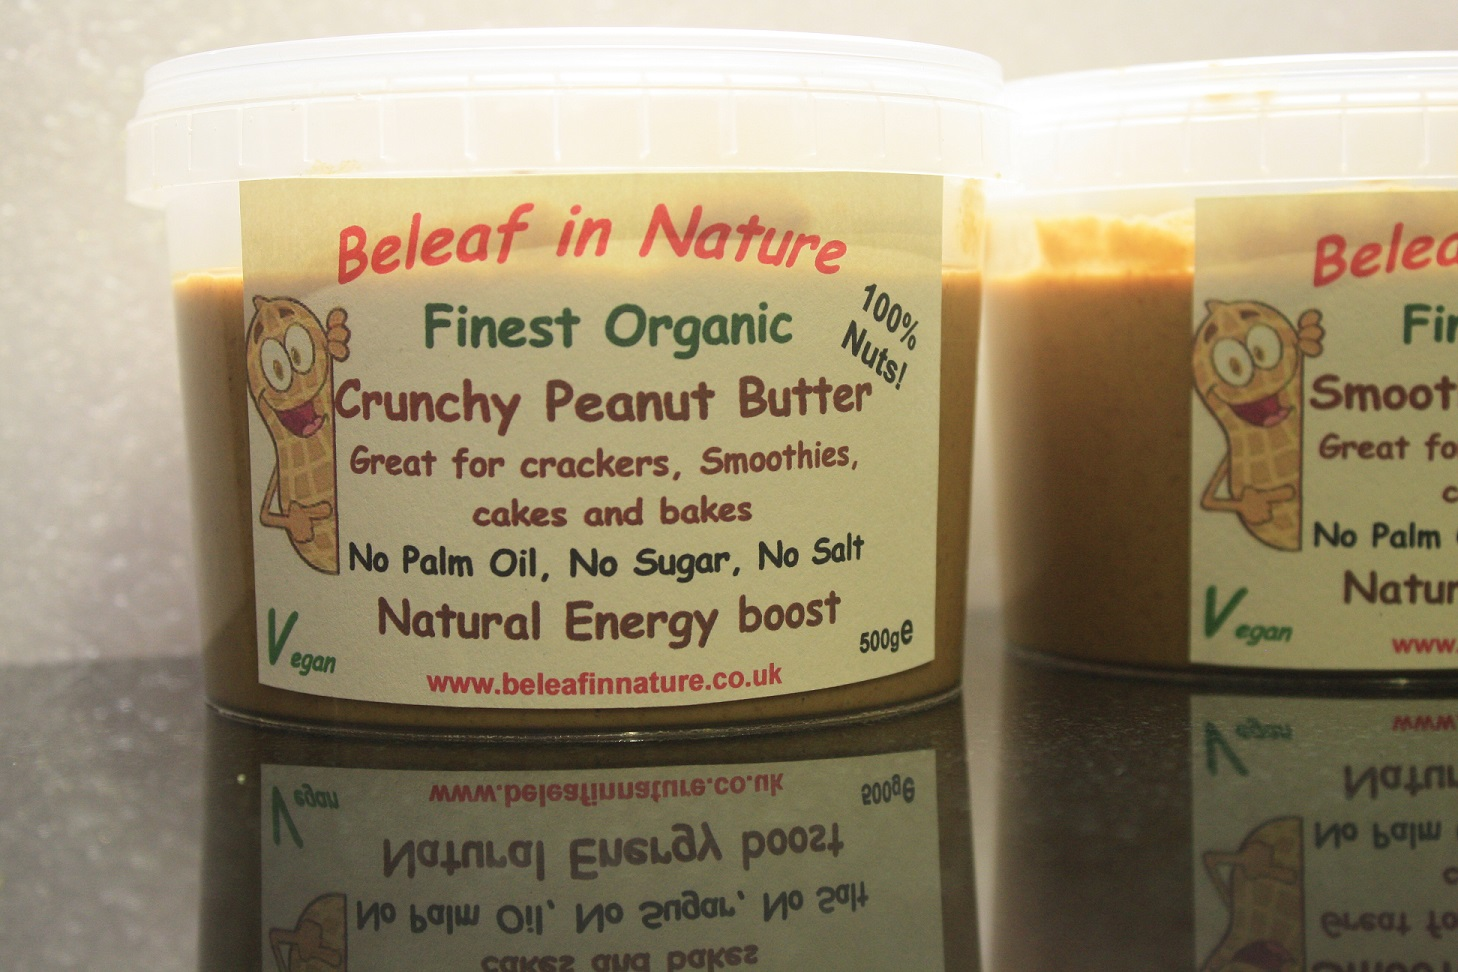 Organic Crunchy Peanut Butter - Beleaf in Nature, Superfoods and Slow Juicers